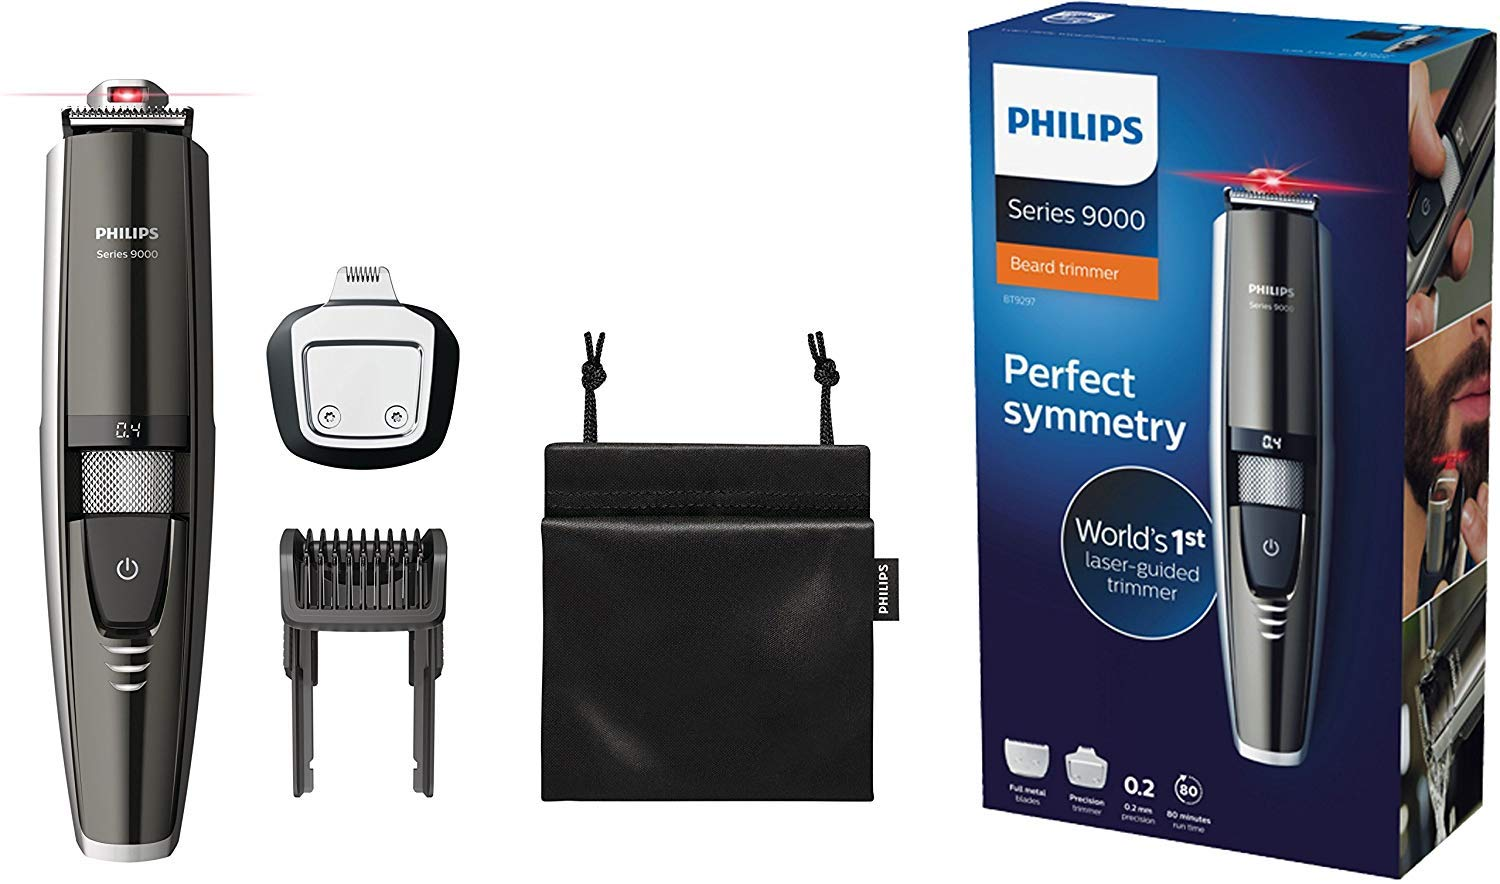 Philips Beard Trimmer Series 9000 with Laser Guide for Accurate Trim BT9297